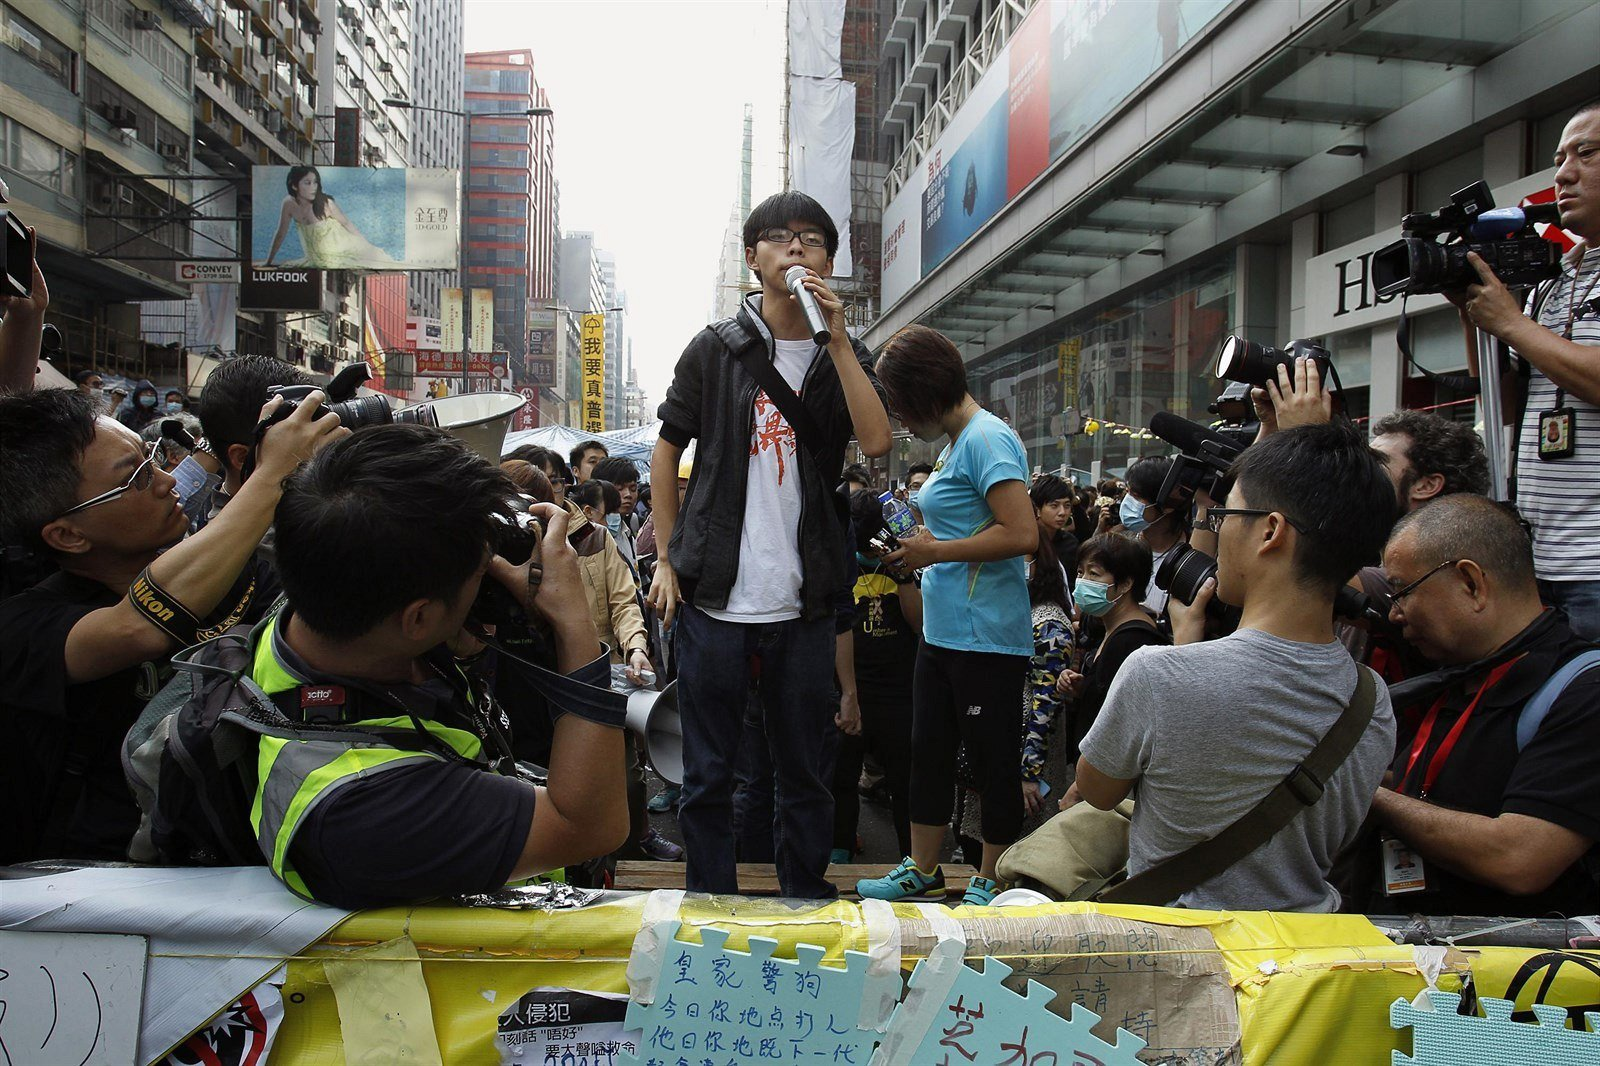 Prominent Hong Kong extremist given new sentence